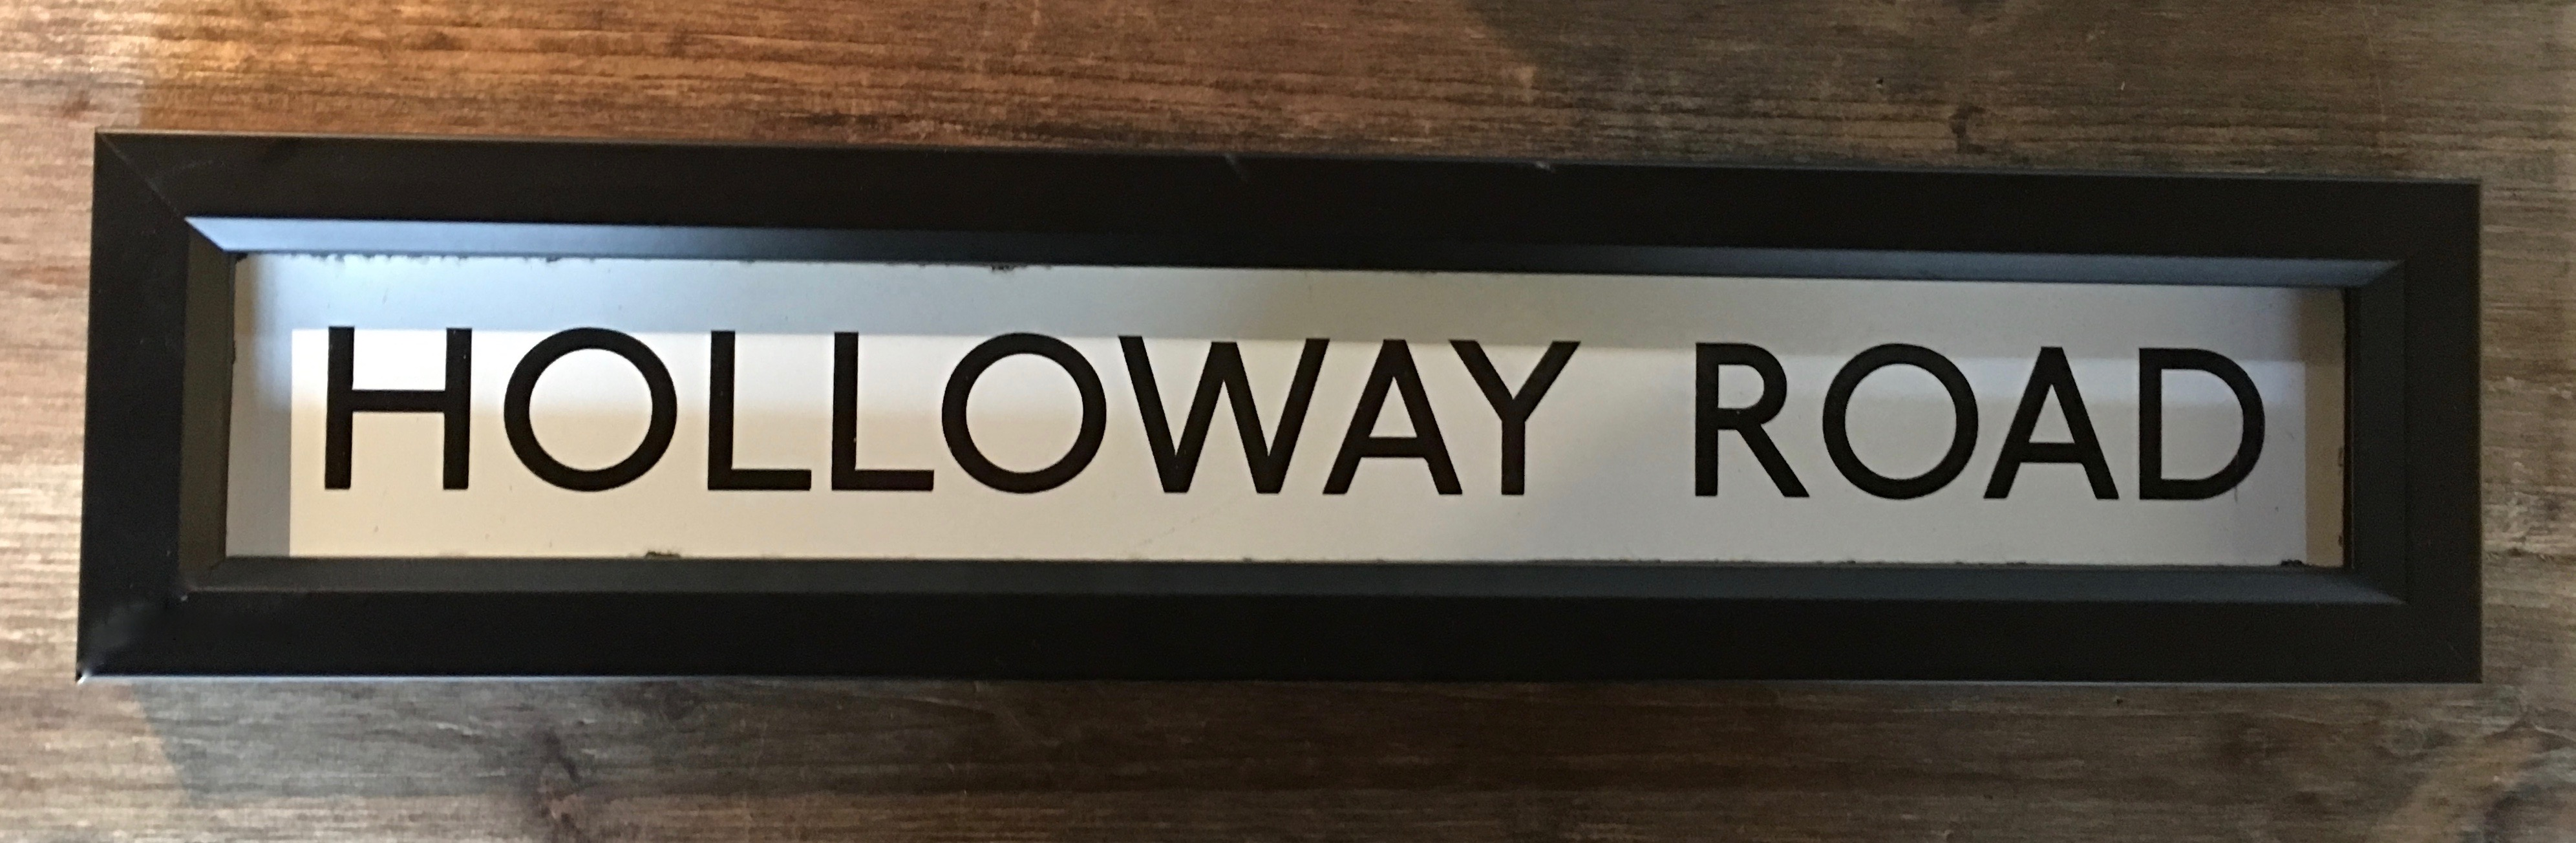 Holloway Road Enamel Sign